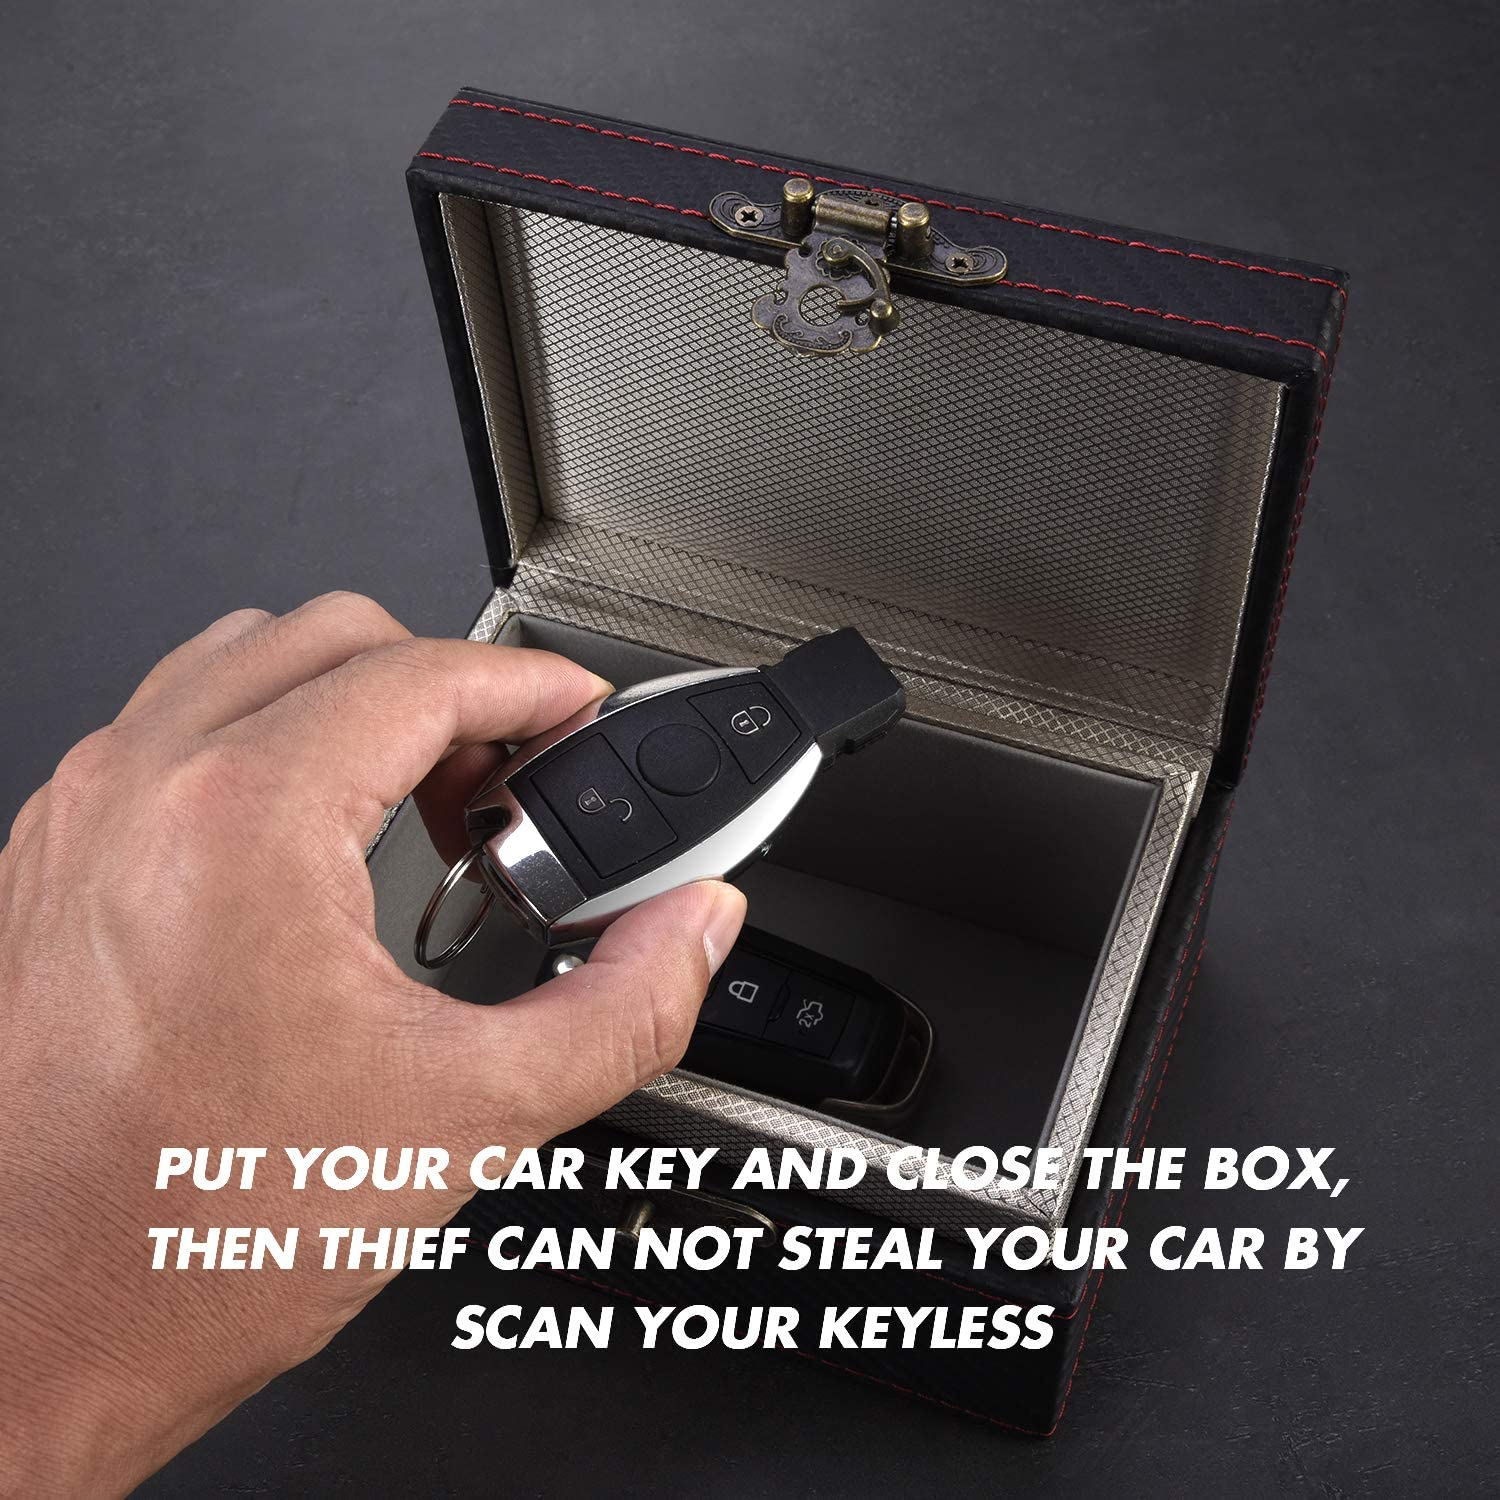 Car Key Faraday Cage Large Box with Black PU Leather Shell Anti Theft Key Fob RFID Signal Blocker Security Prevent Your Vehicle Keys from Being Scanned by Criminal